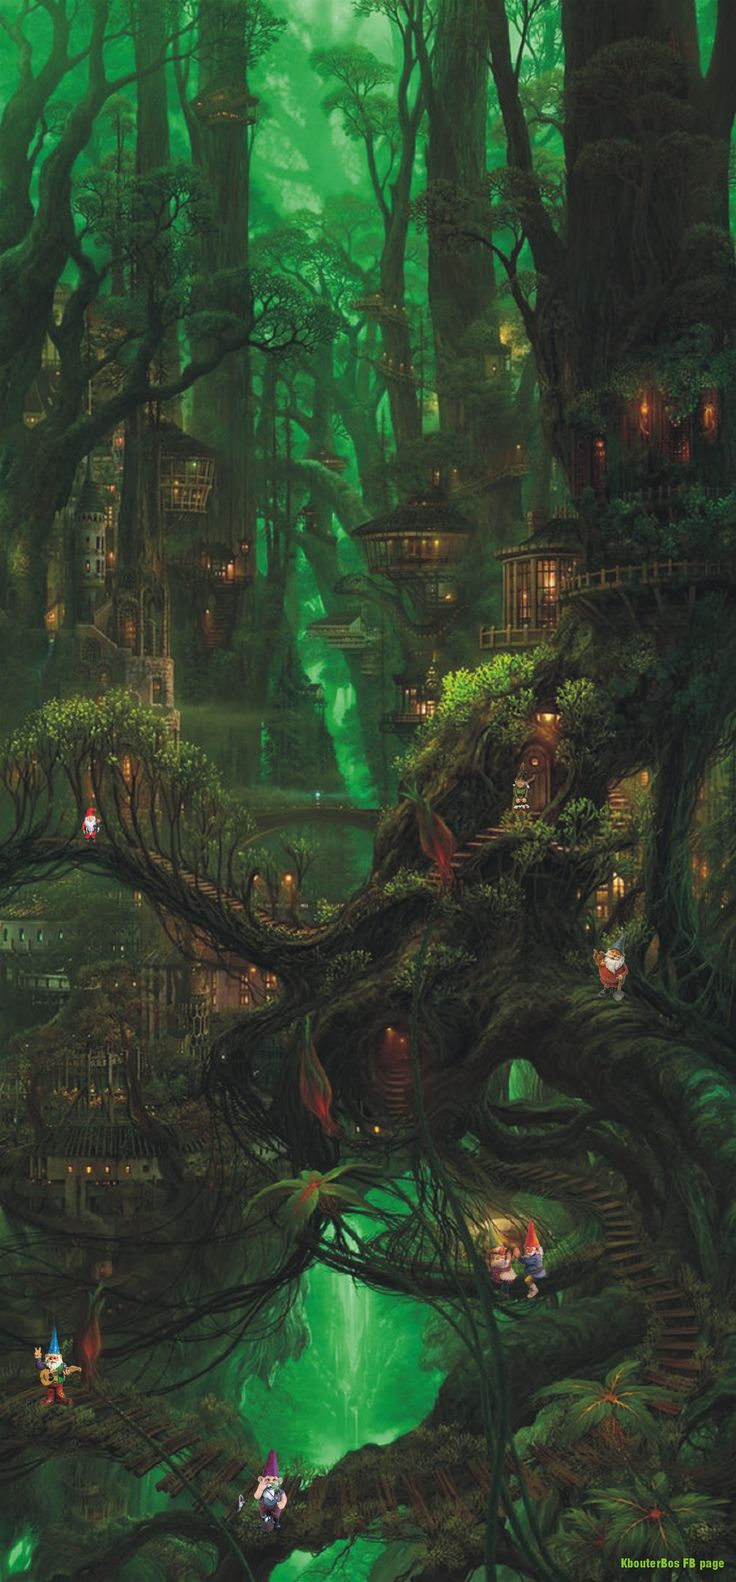 If you look closer in that Fairywood, you see the little gnomes live together. Their community is as old as beginning of all times...